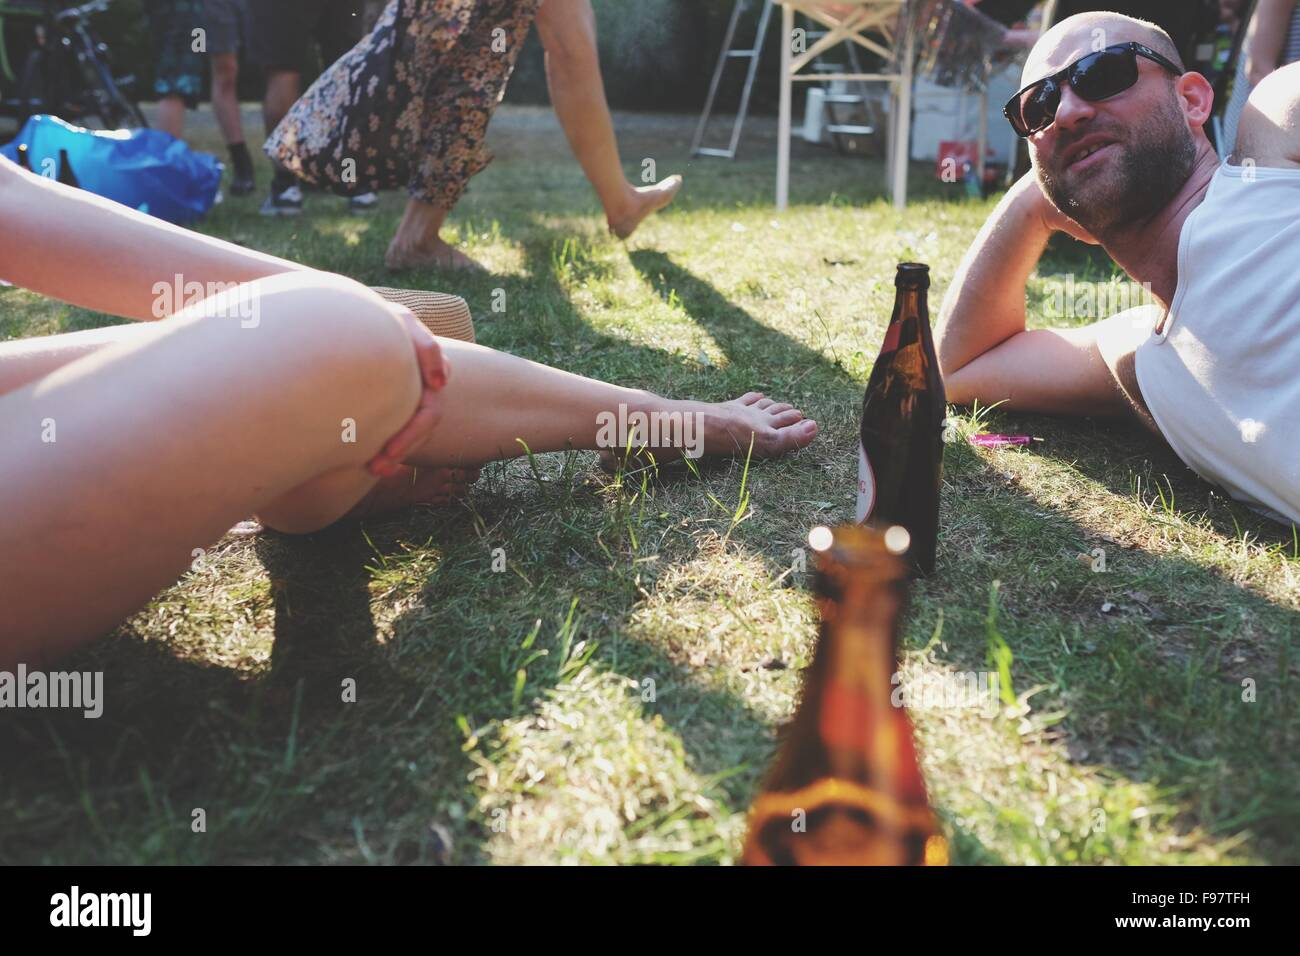 Man And Woman With Beer Bottles At Park - Stock Image